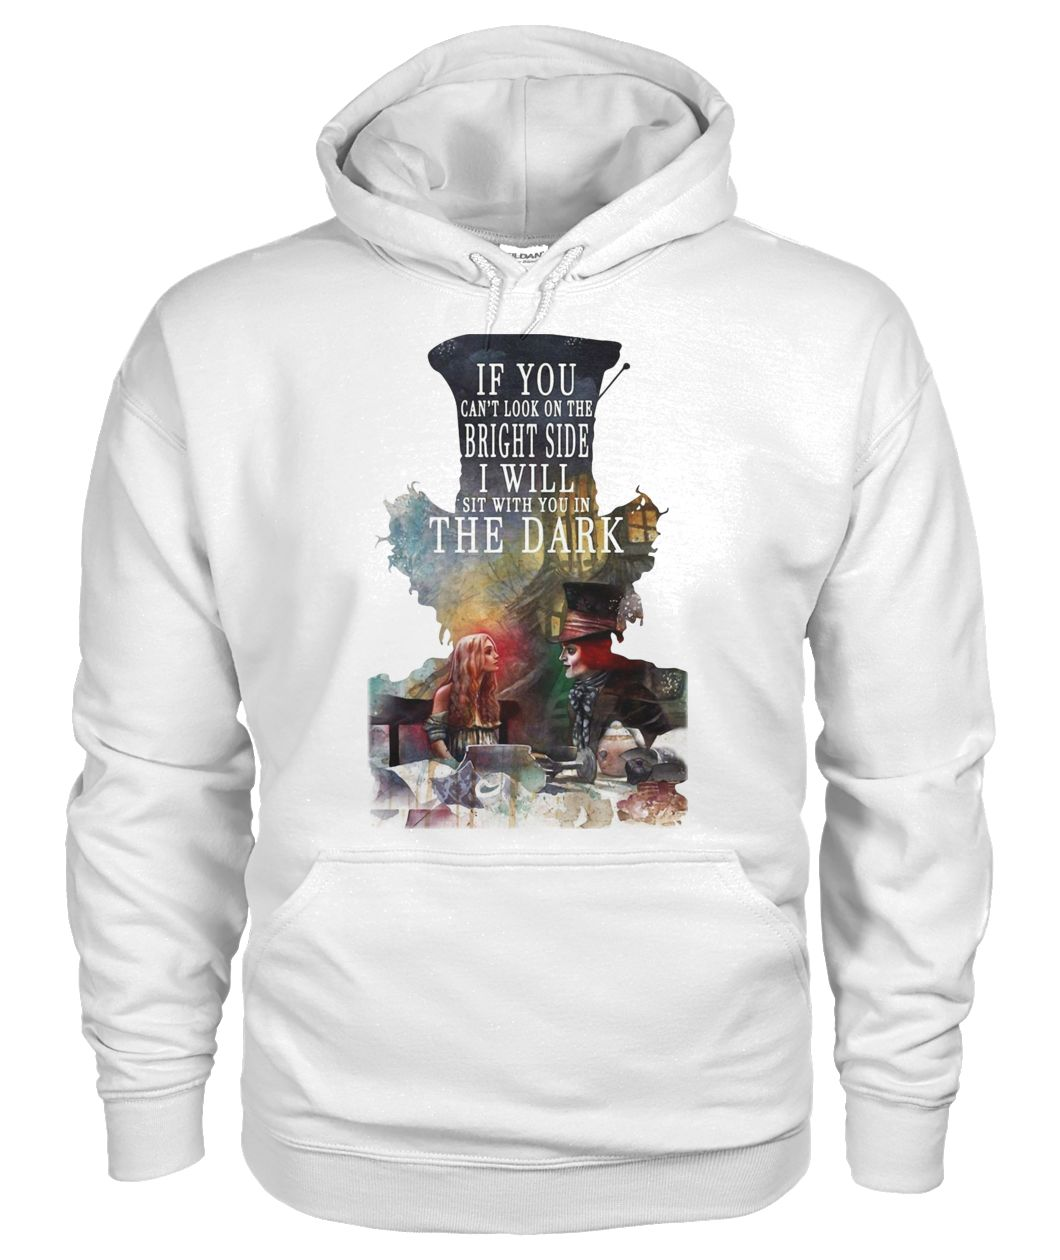 If you can't look on the bright side I'll sit with you in the dark gildan hoodie